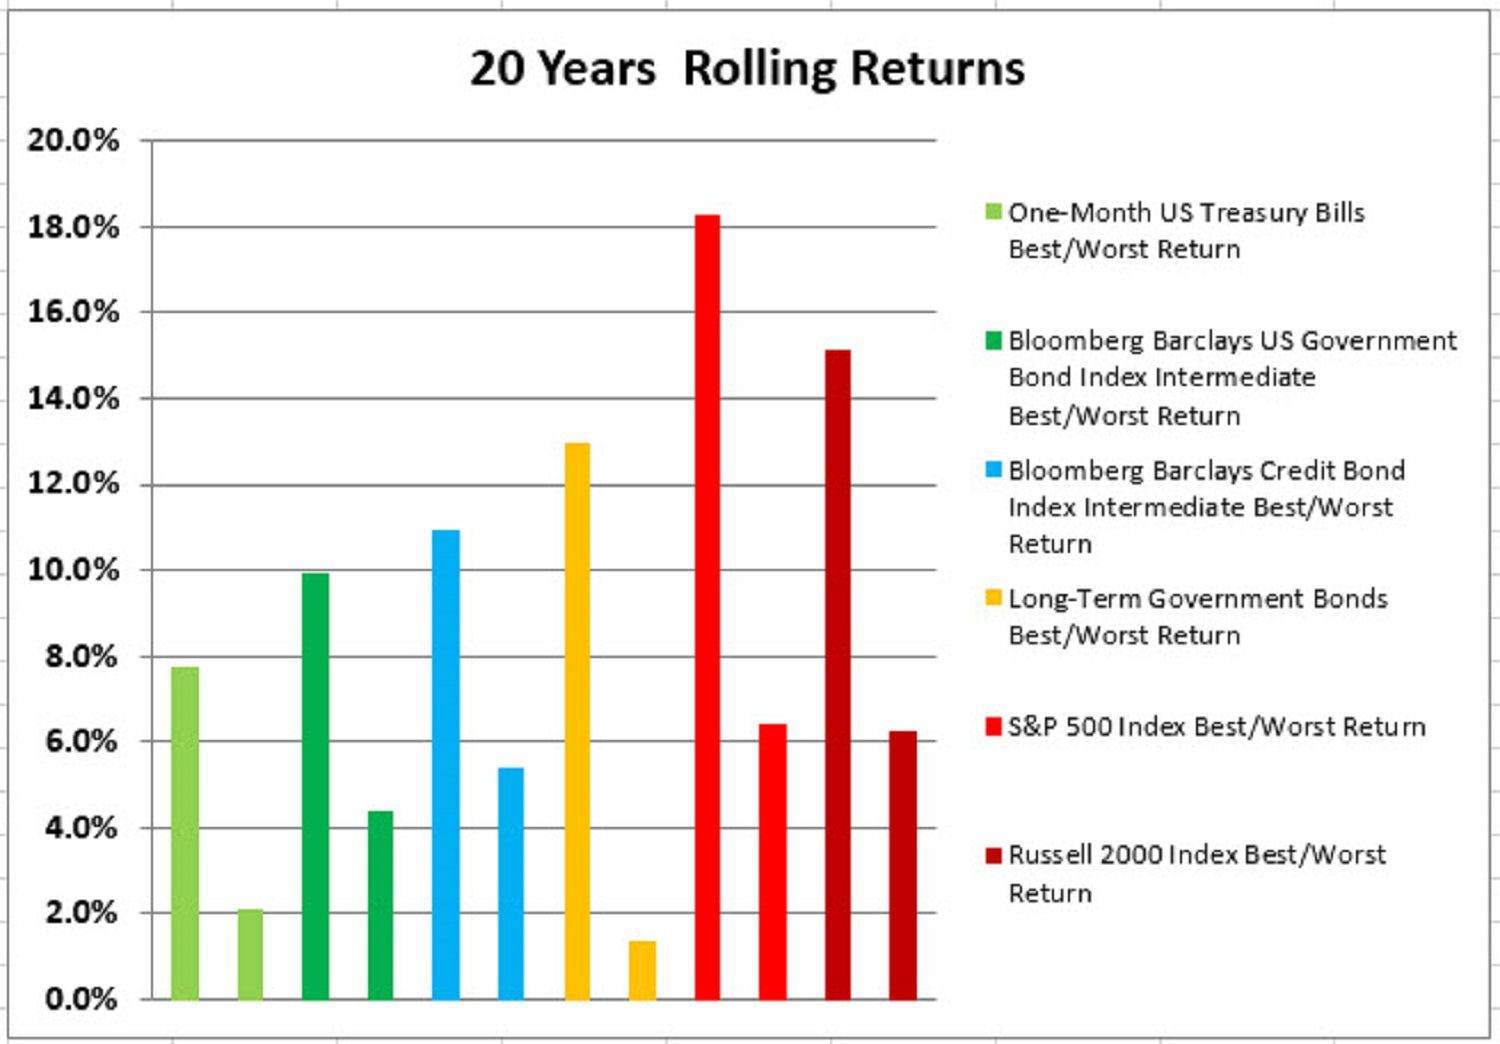 20 Years Rolling Returns